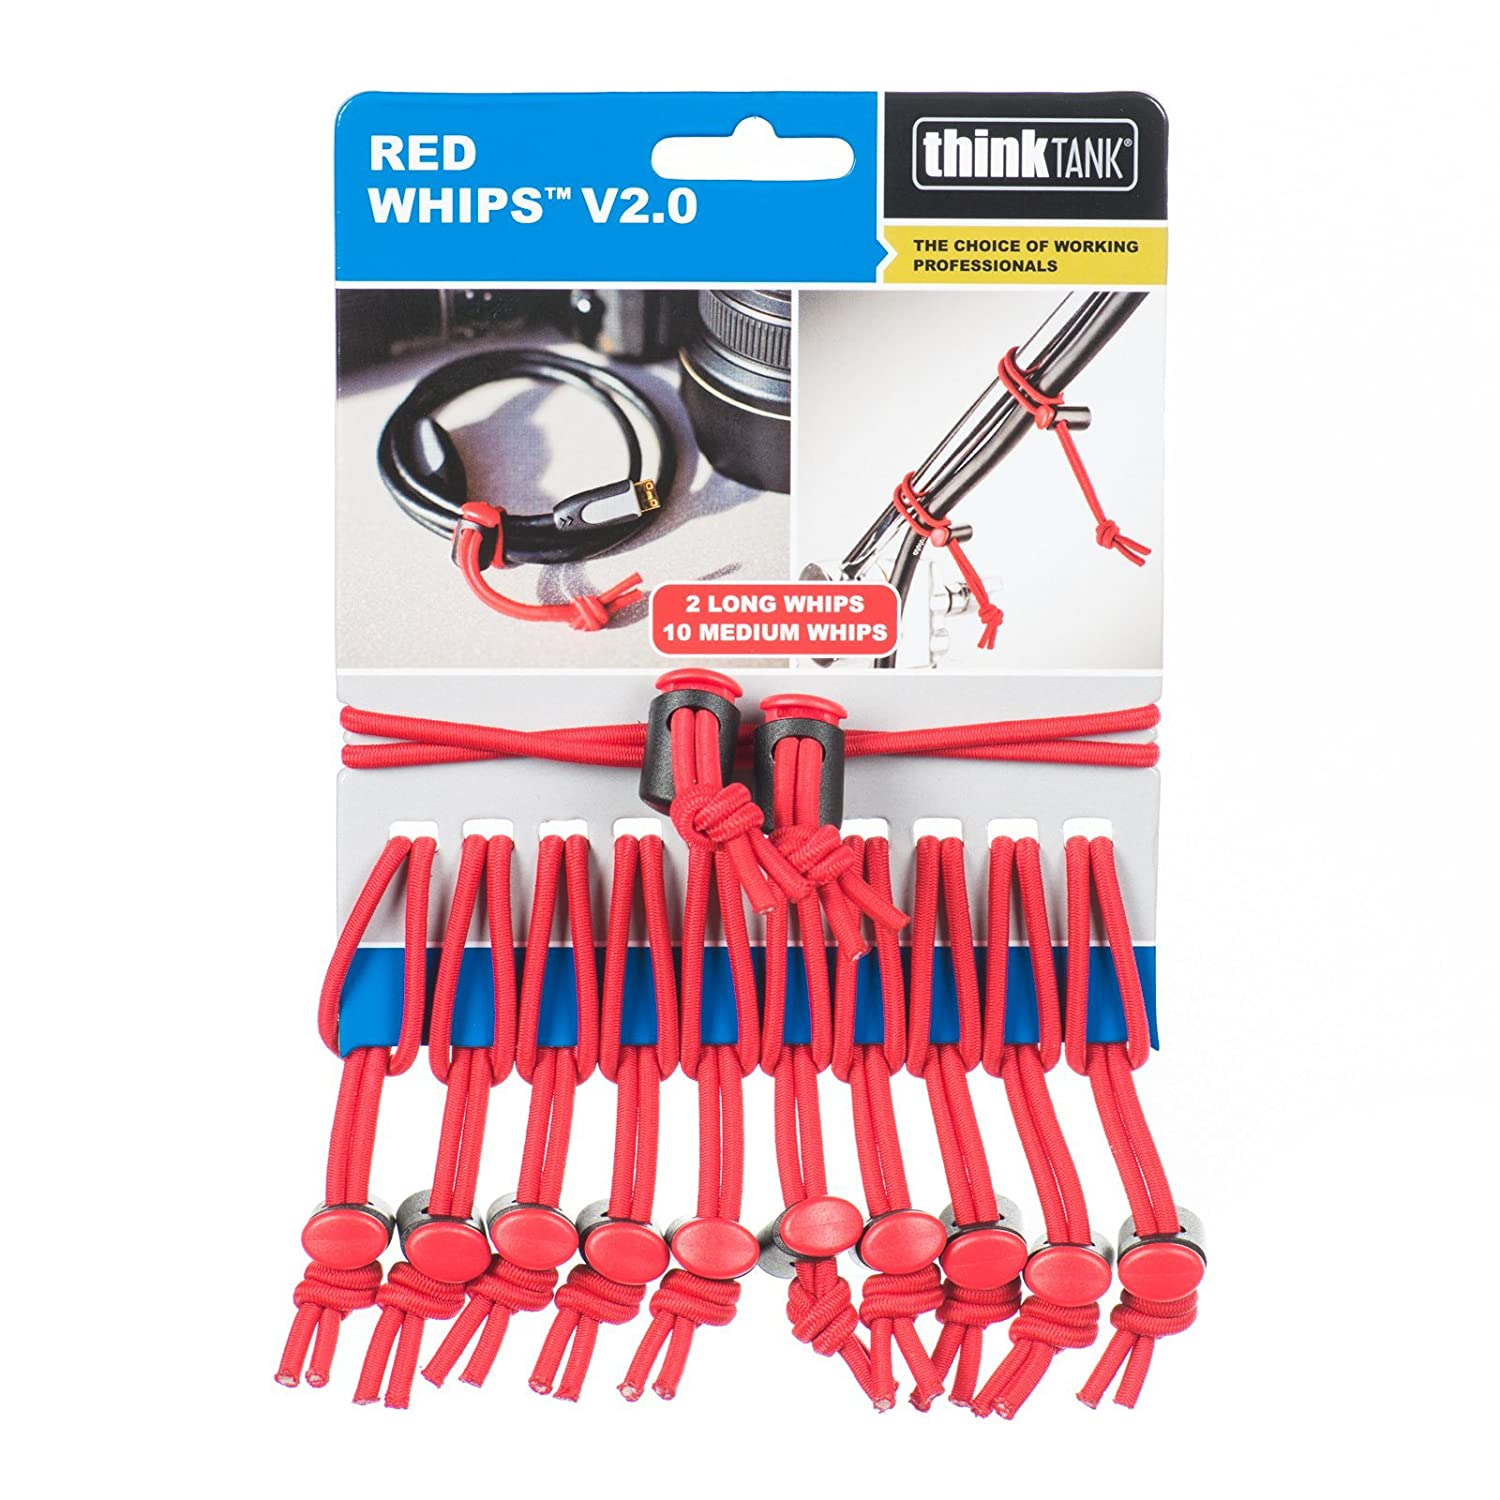 Think Tank Photo Red Whips Reusable Bungee Cable Ties V2.0 740964